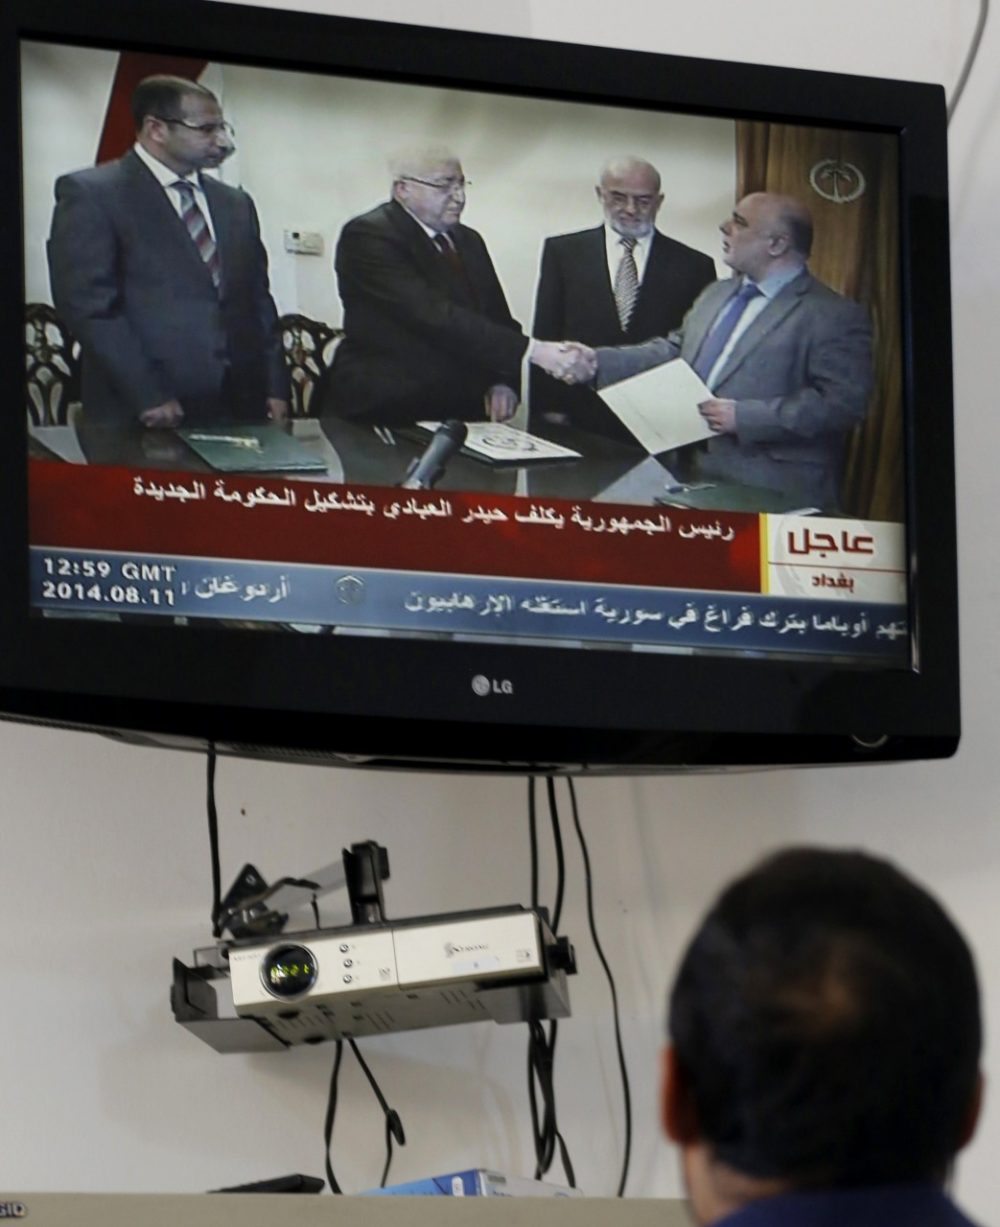 A journalist watches as Iraqi President Fuad Masum shakes hands with deputy parliamentary speaker Haidar al-Abadi, who has been tasked with forming a government, during a brief ceremony broadcast on state television on August 11, 2014, in Baghdad. (Sabah Arar/AFP/Getty Images)